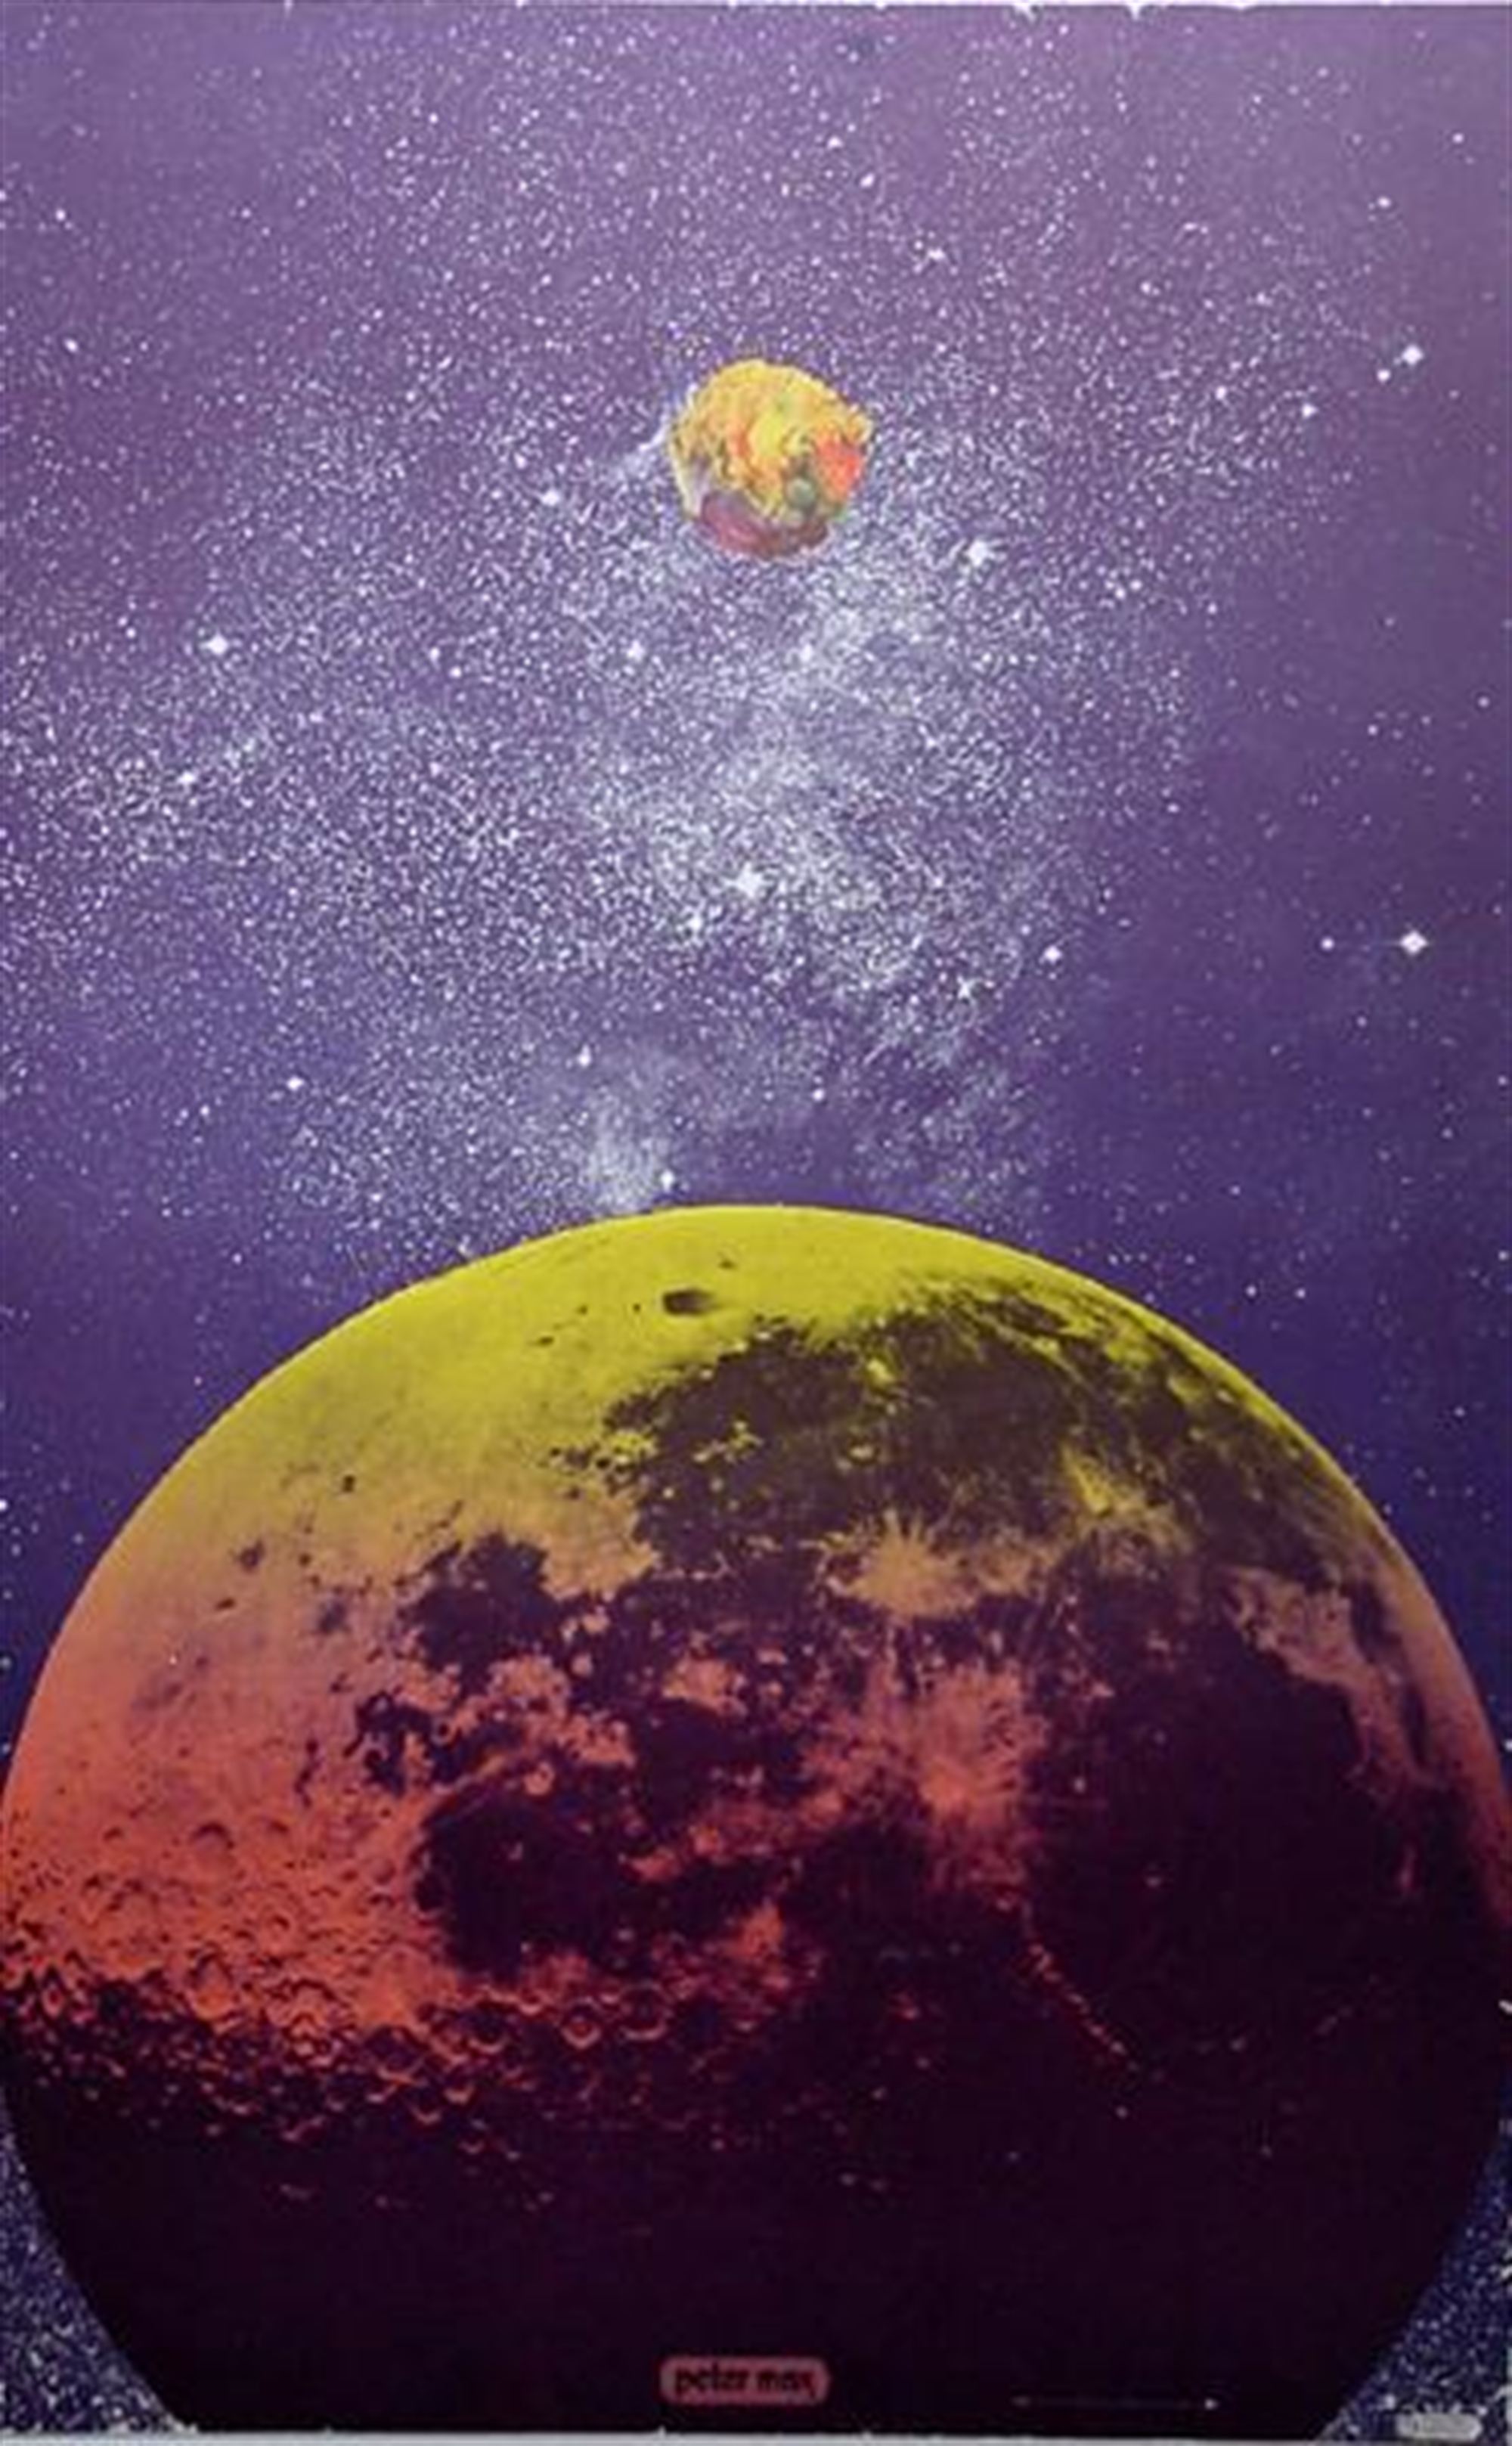 Outer Space #9 by Peter Max